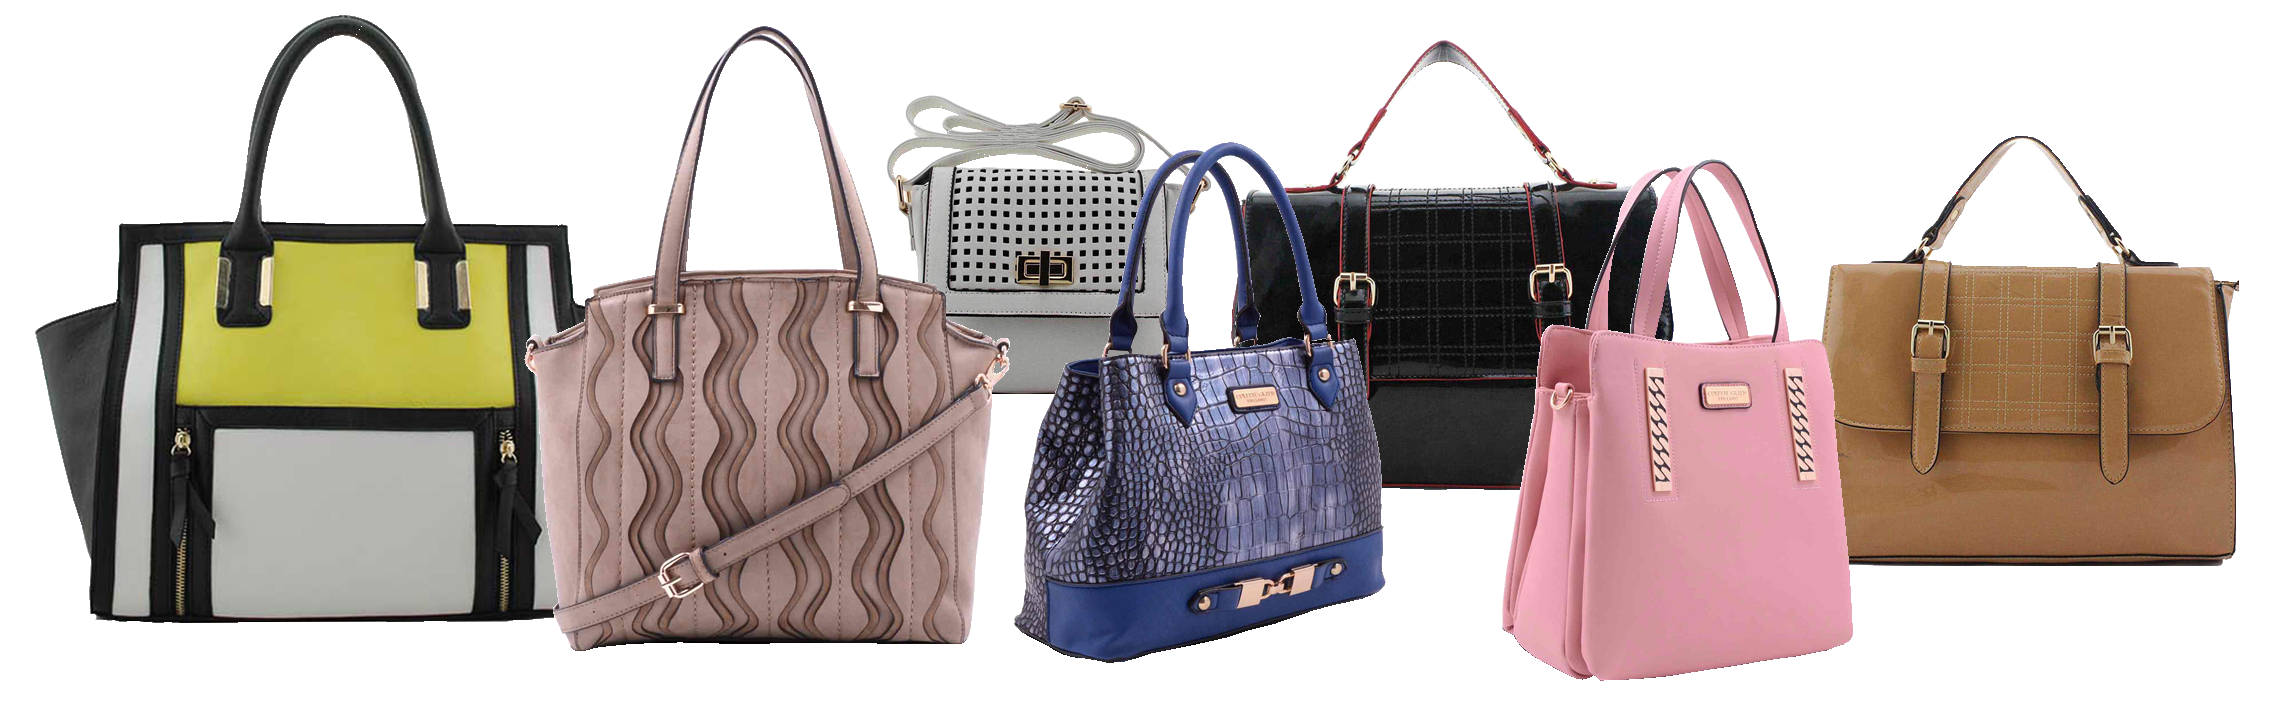 Online Auctions for Handbags & Purses from Deal Locators